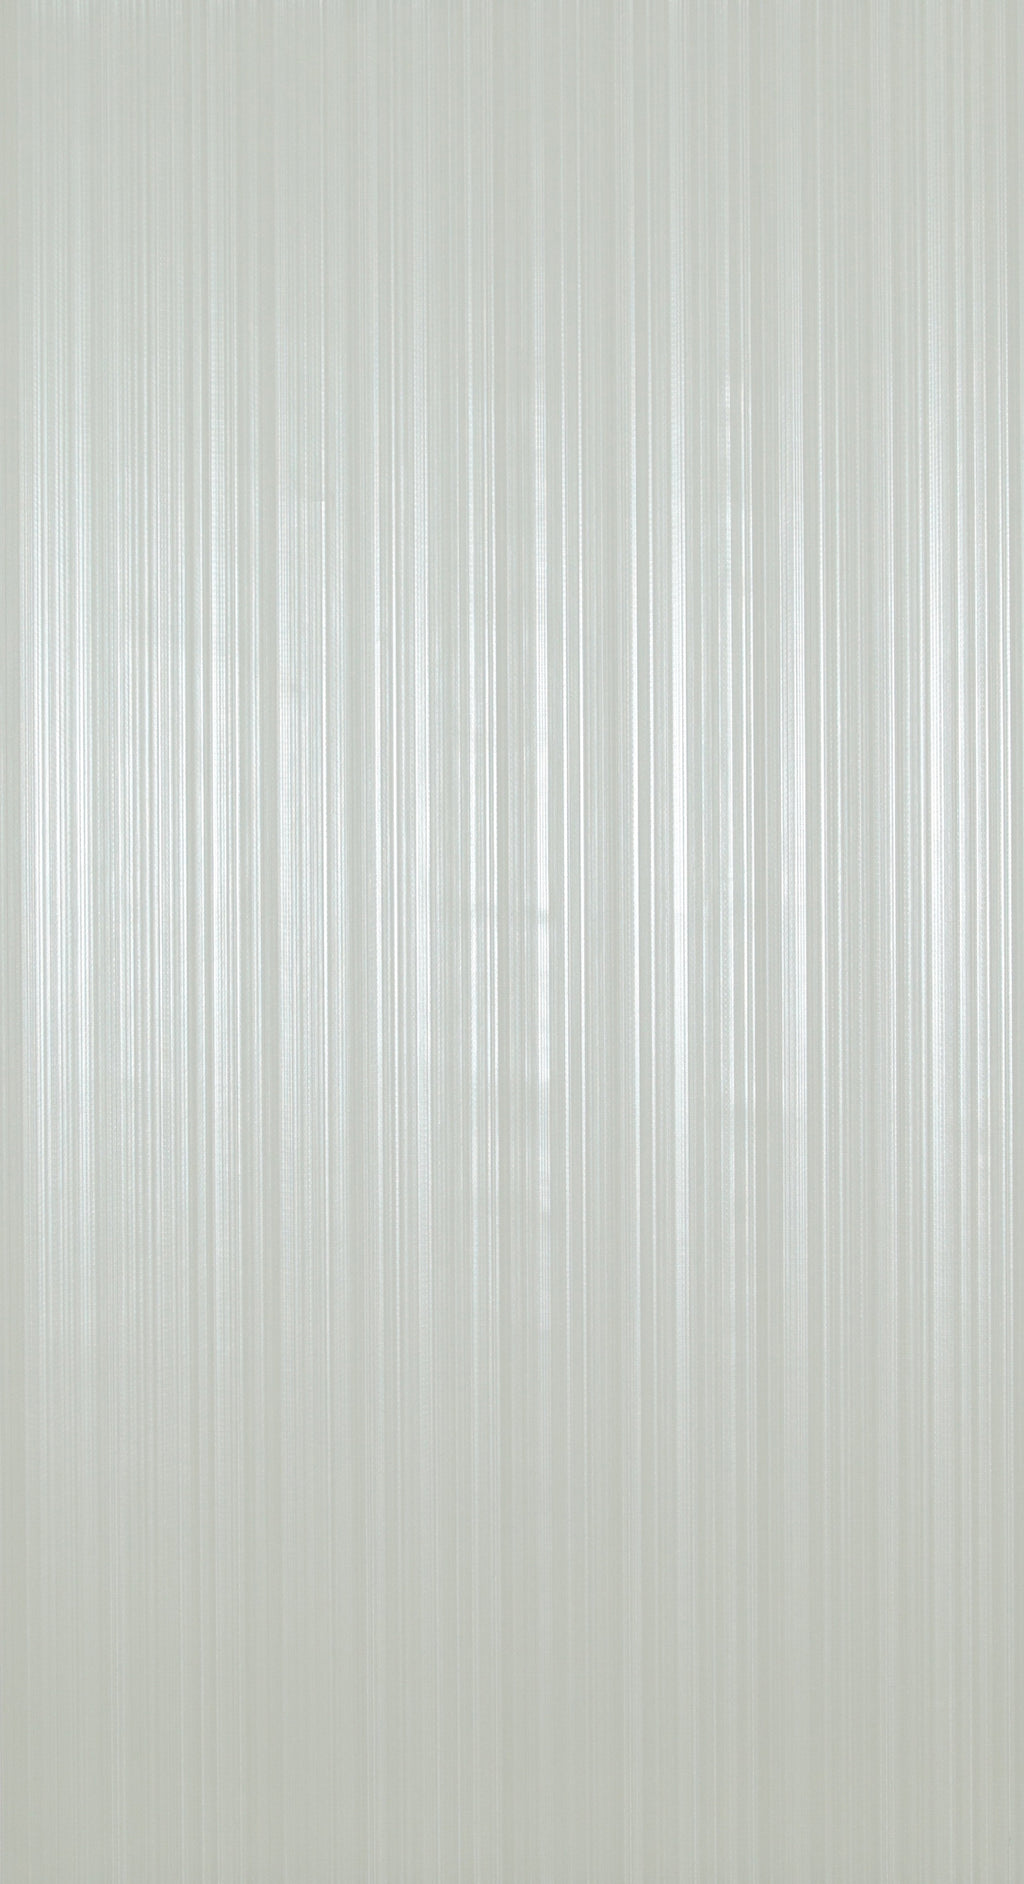 Light Grey Minimalist Vinyl Wallpaper C7193 | Commercial & Hospitality